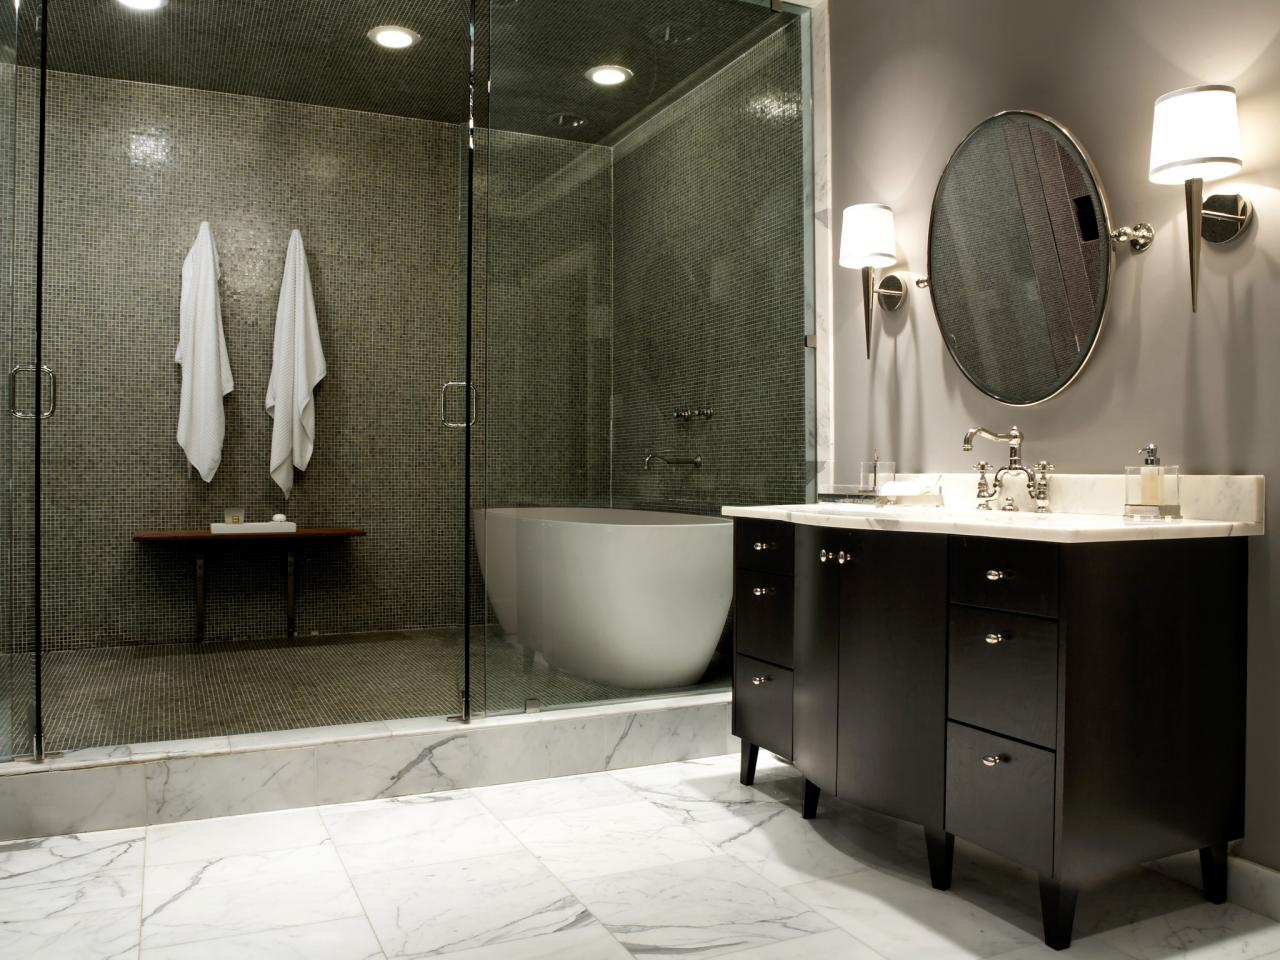 Fascinating Visible Showering Area Using Built in Lamp For Great Room Layout Planner